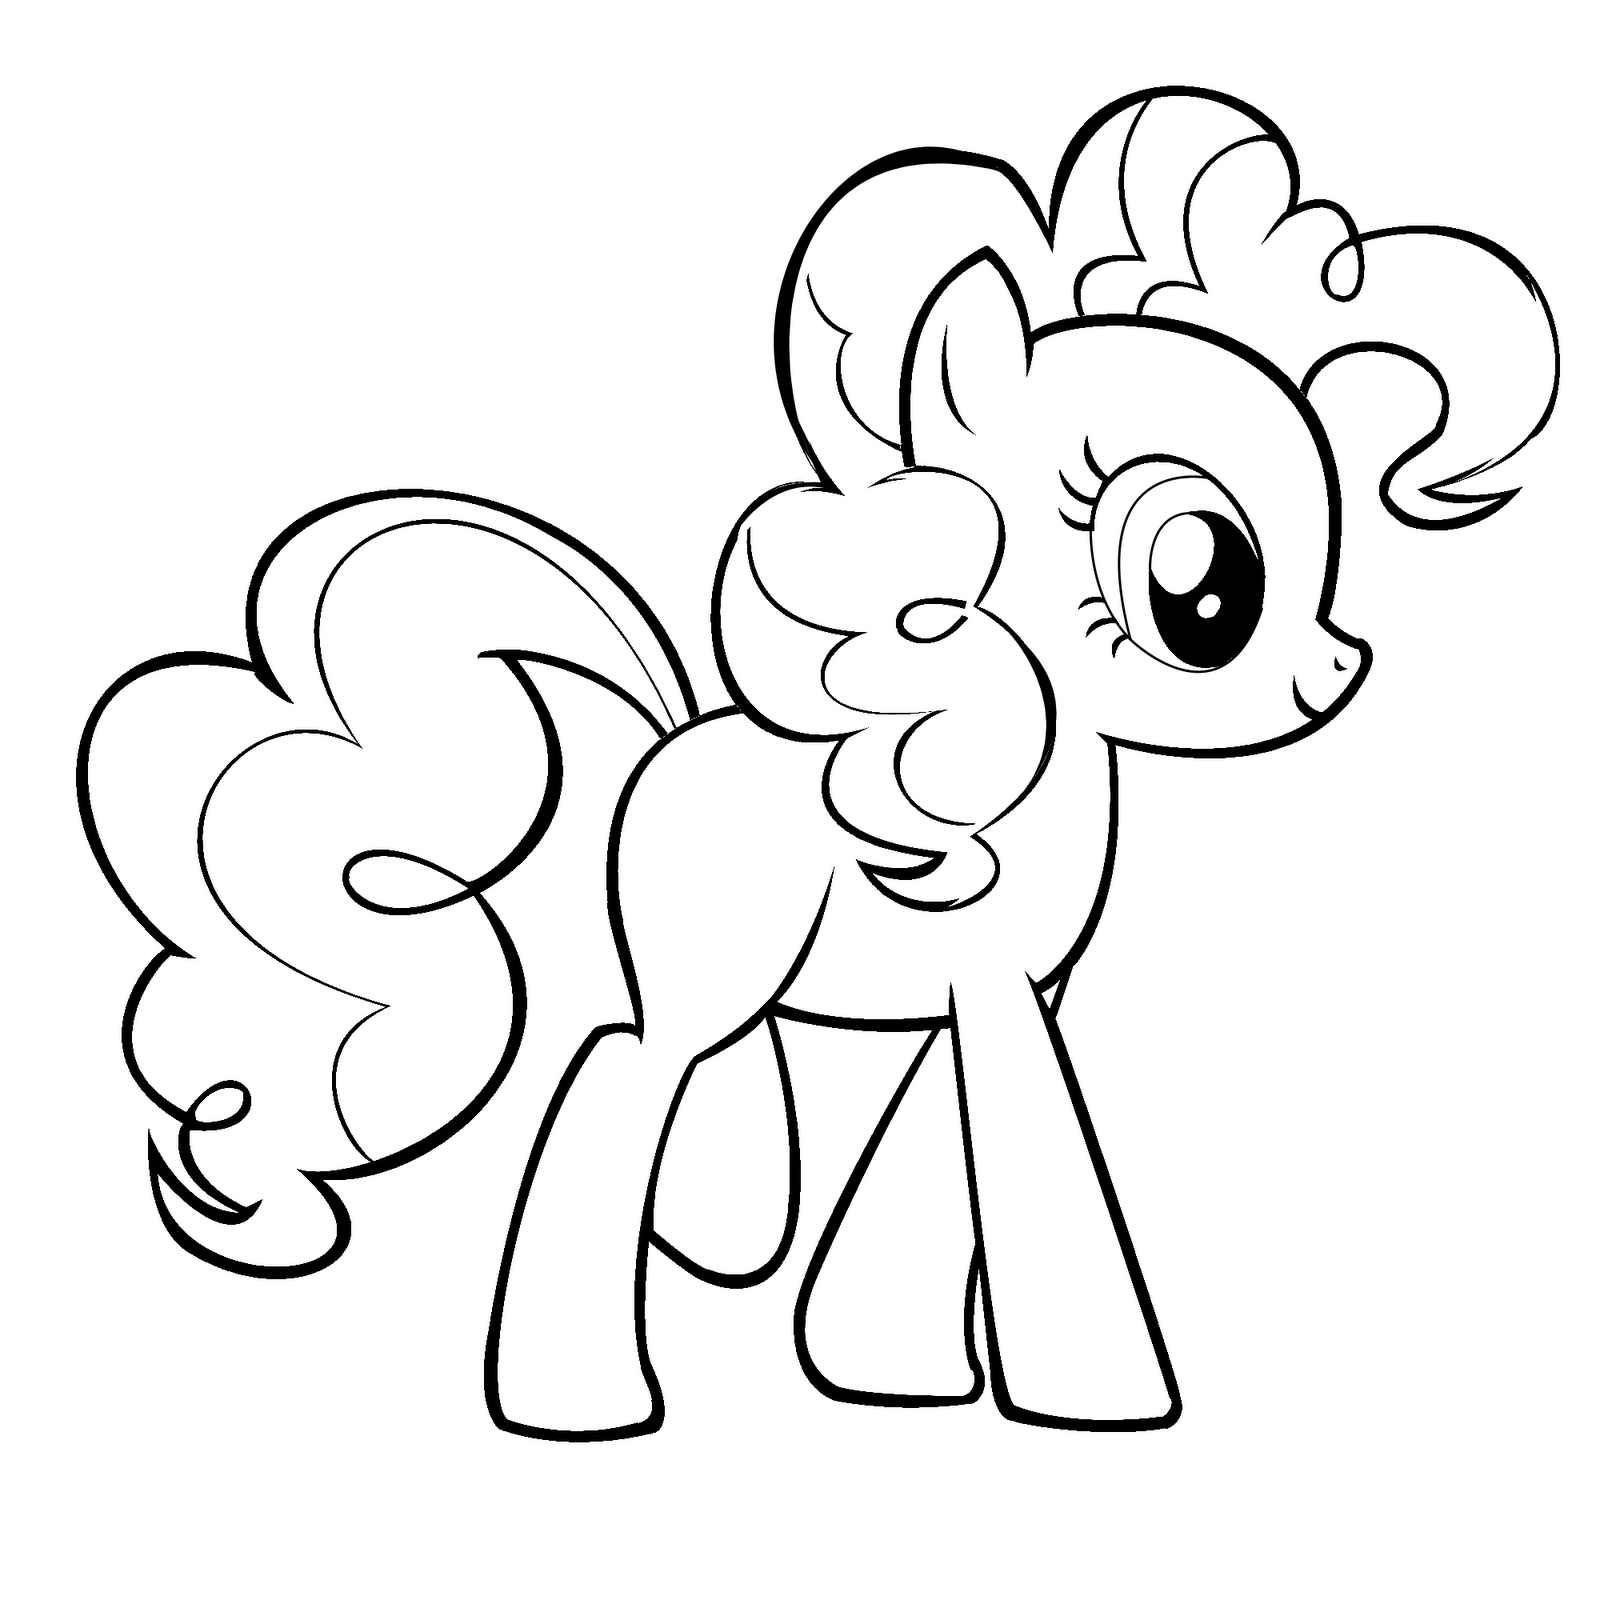 pinky pie coloring pages my little pony pinkie pie coloring page free printable coloring pages pie pinky